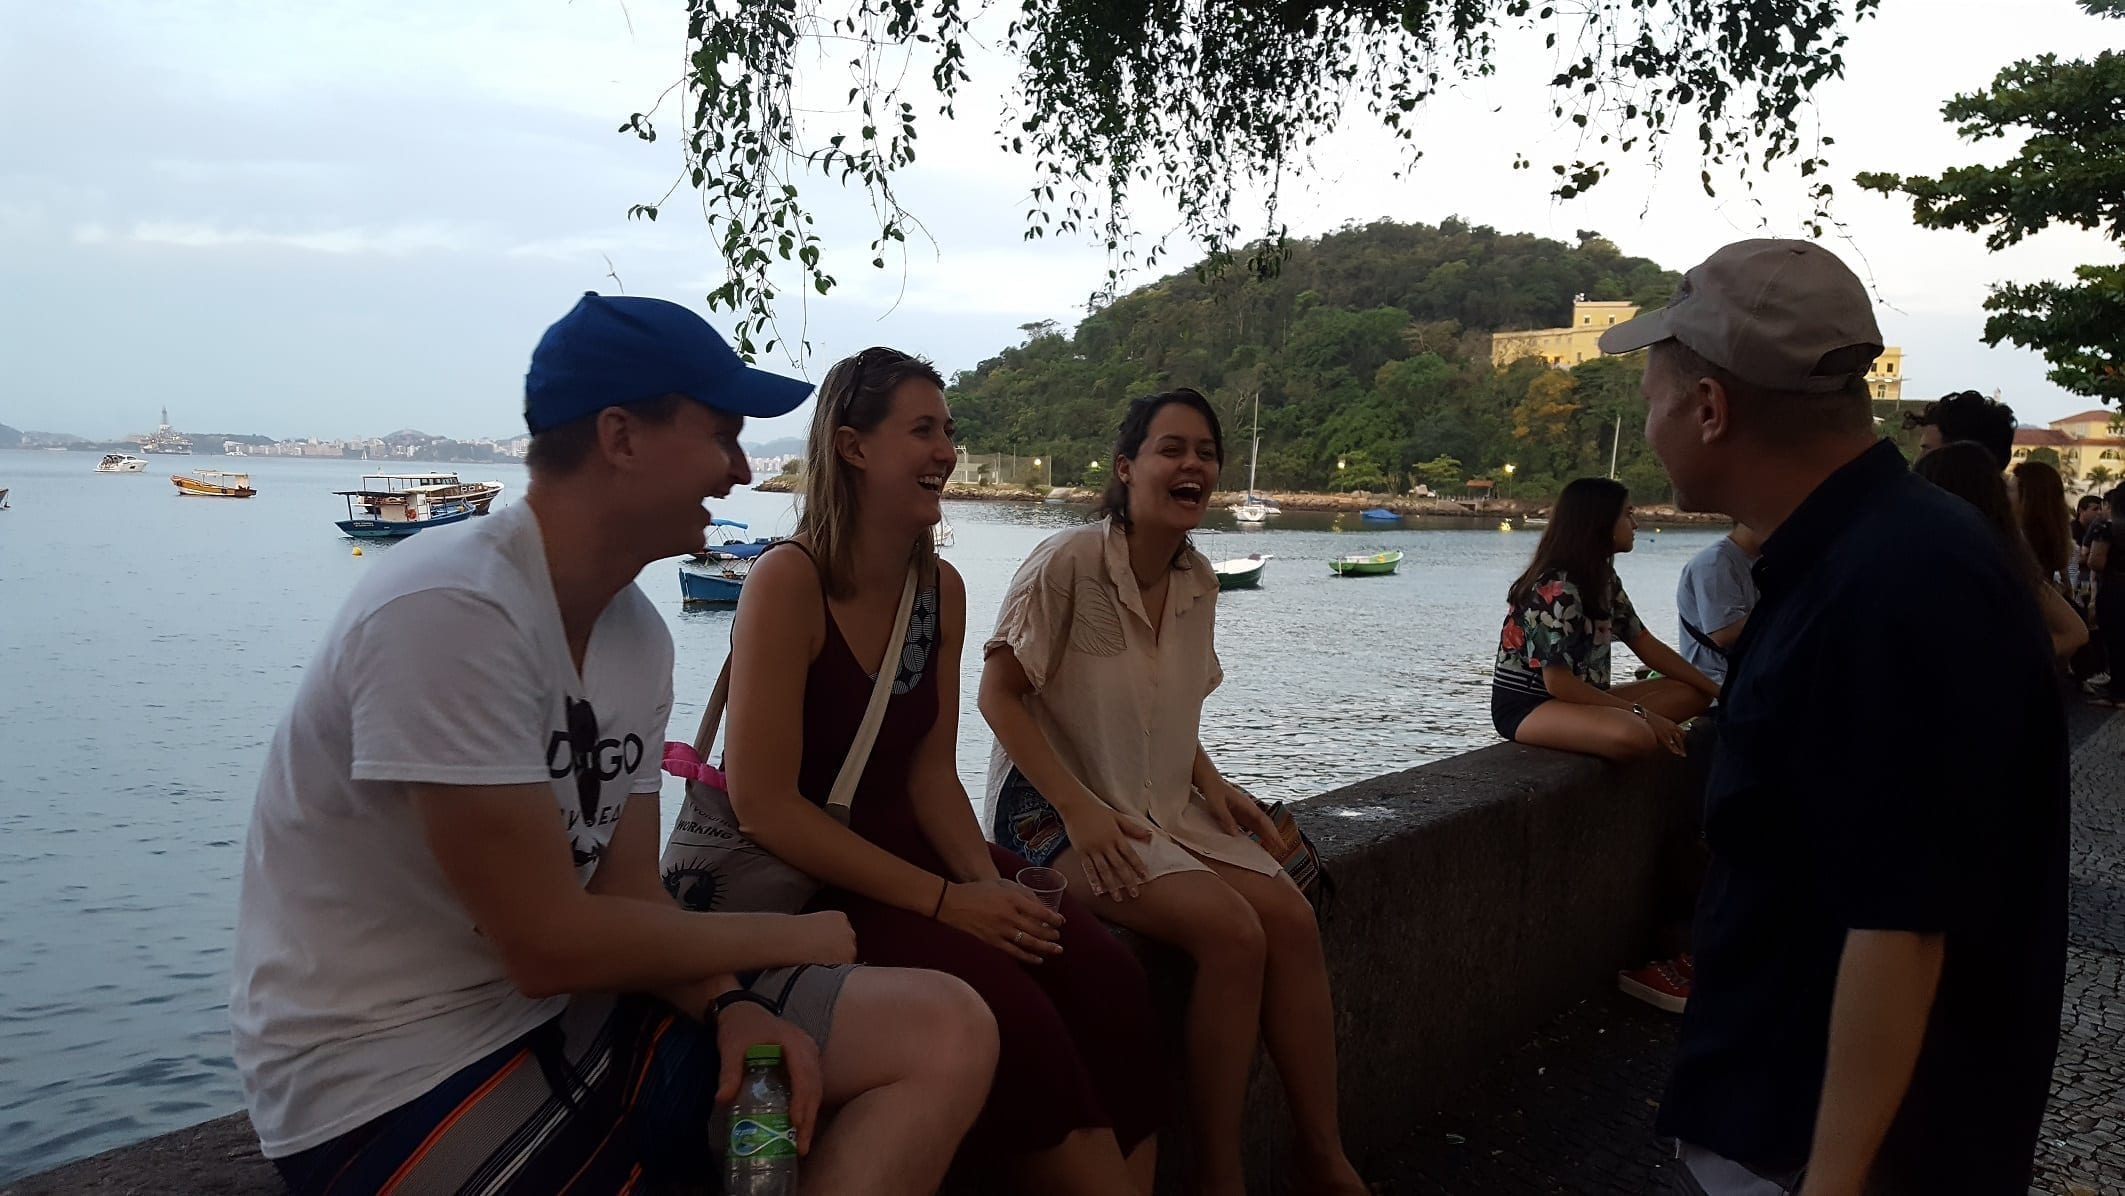 Sitting at the Urca wall and having a nice conversation in Portuguese at the RioLIVE!